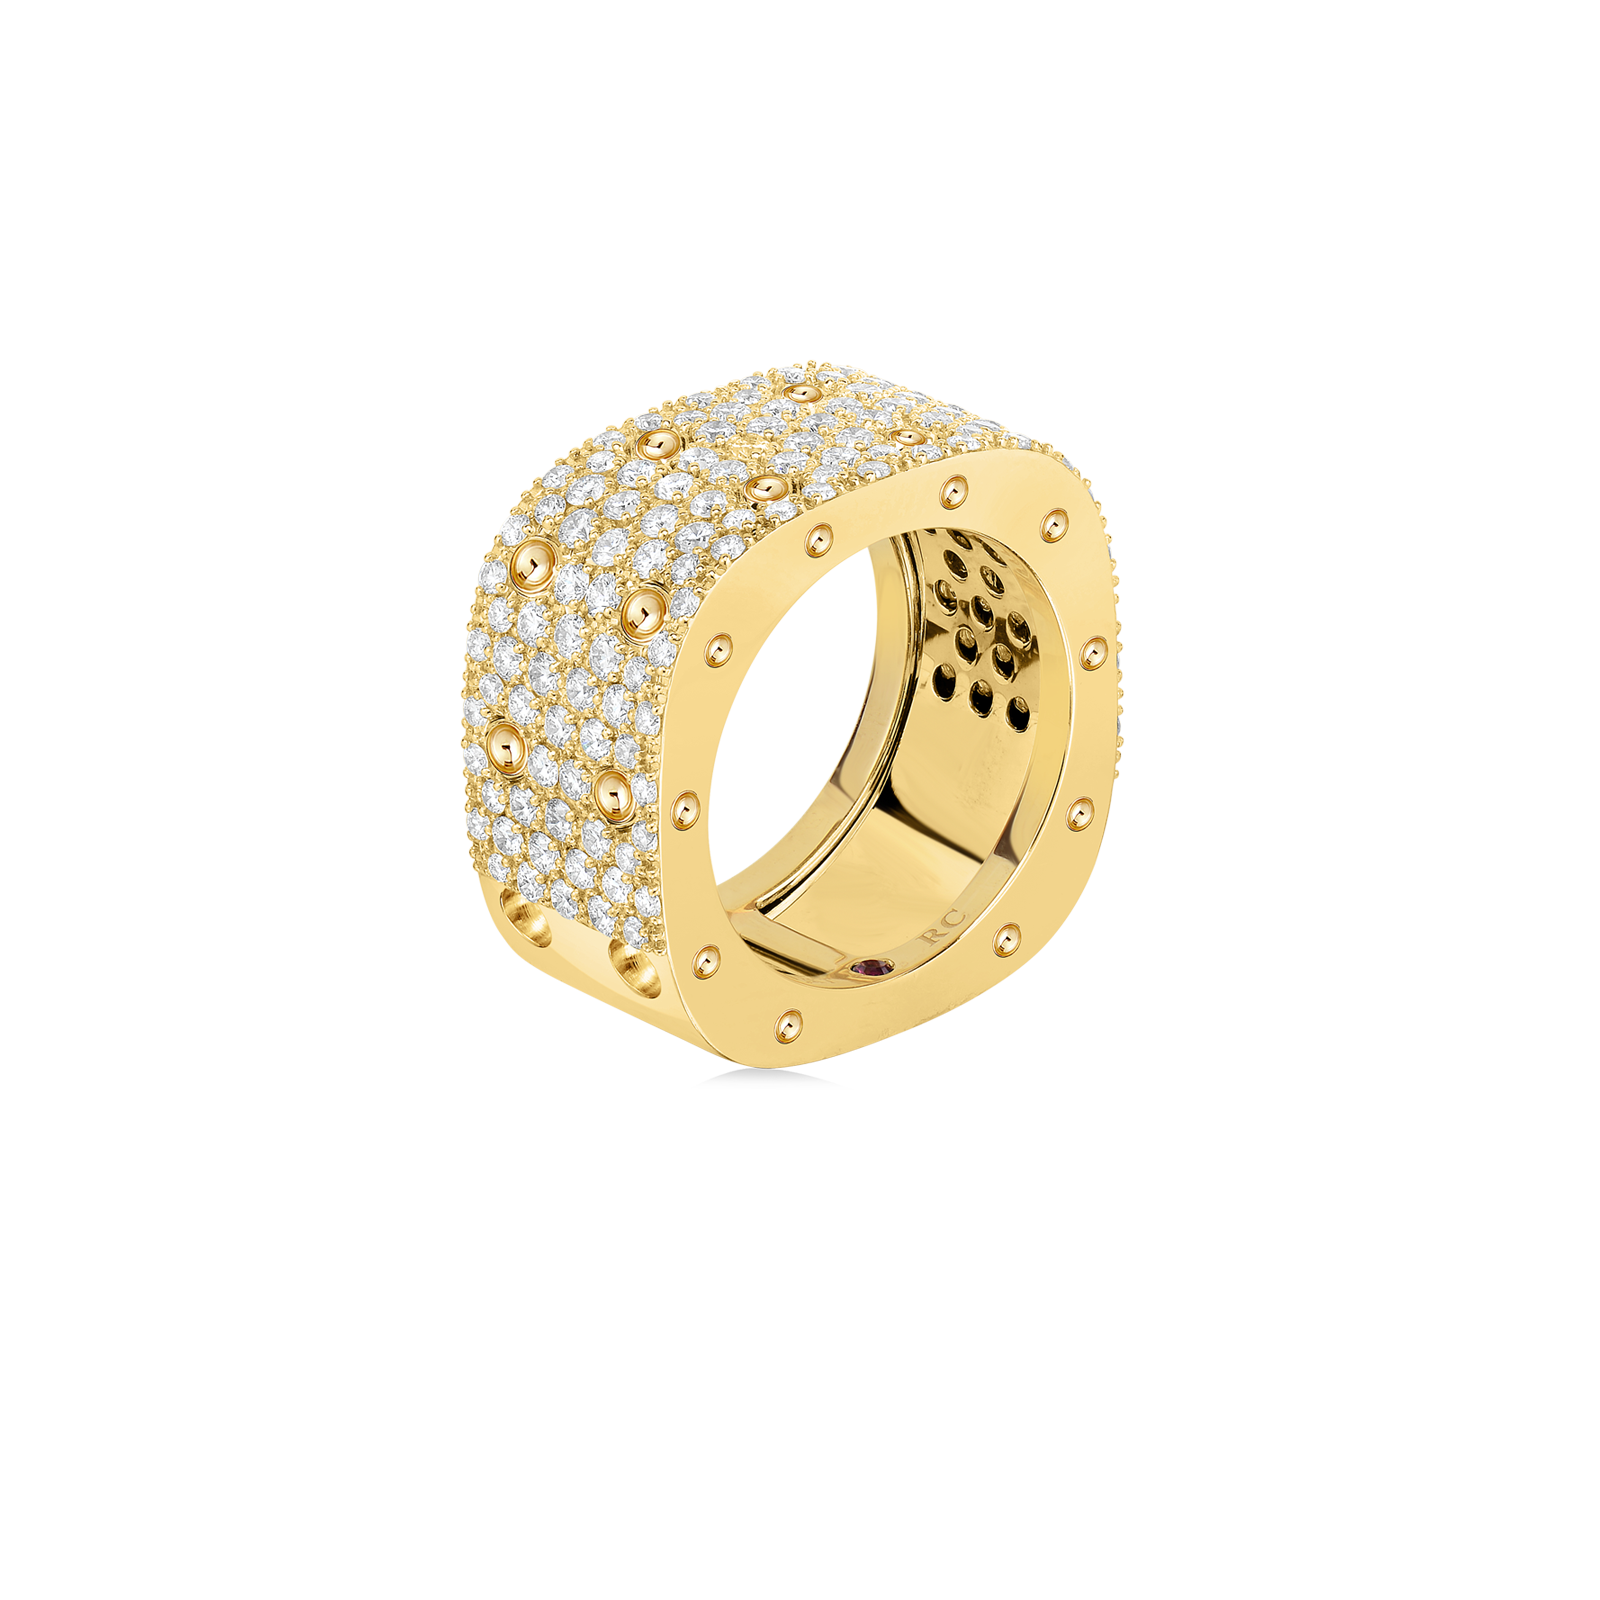 Roberto-Coin-Pois-Moi-18K-Yellow-Gold-2-Row-Square-Ring-with-Diamonds-888705AY50X0_SIDE